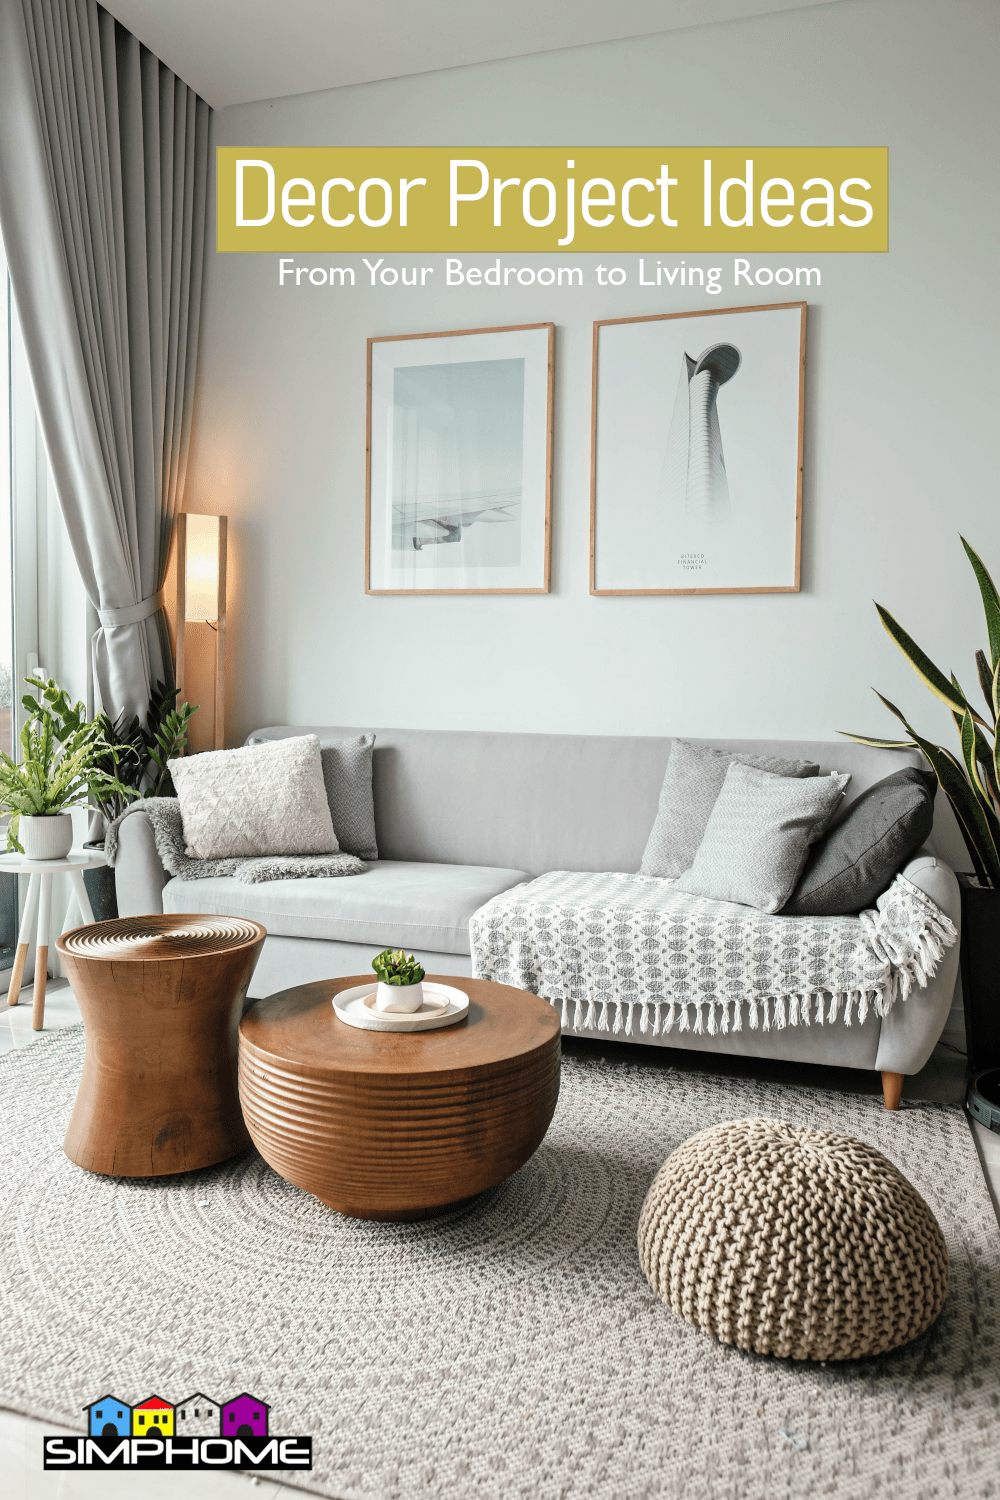 Decor Projects That Will Upgrade Your Home via Simphome.com